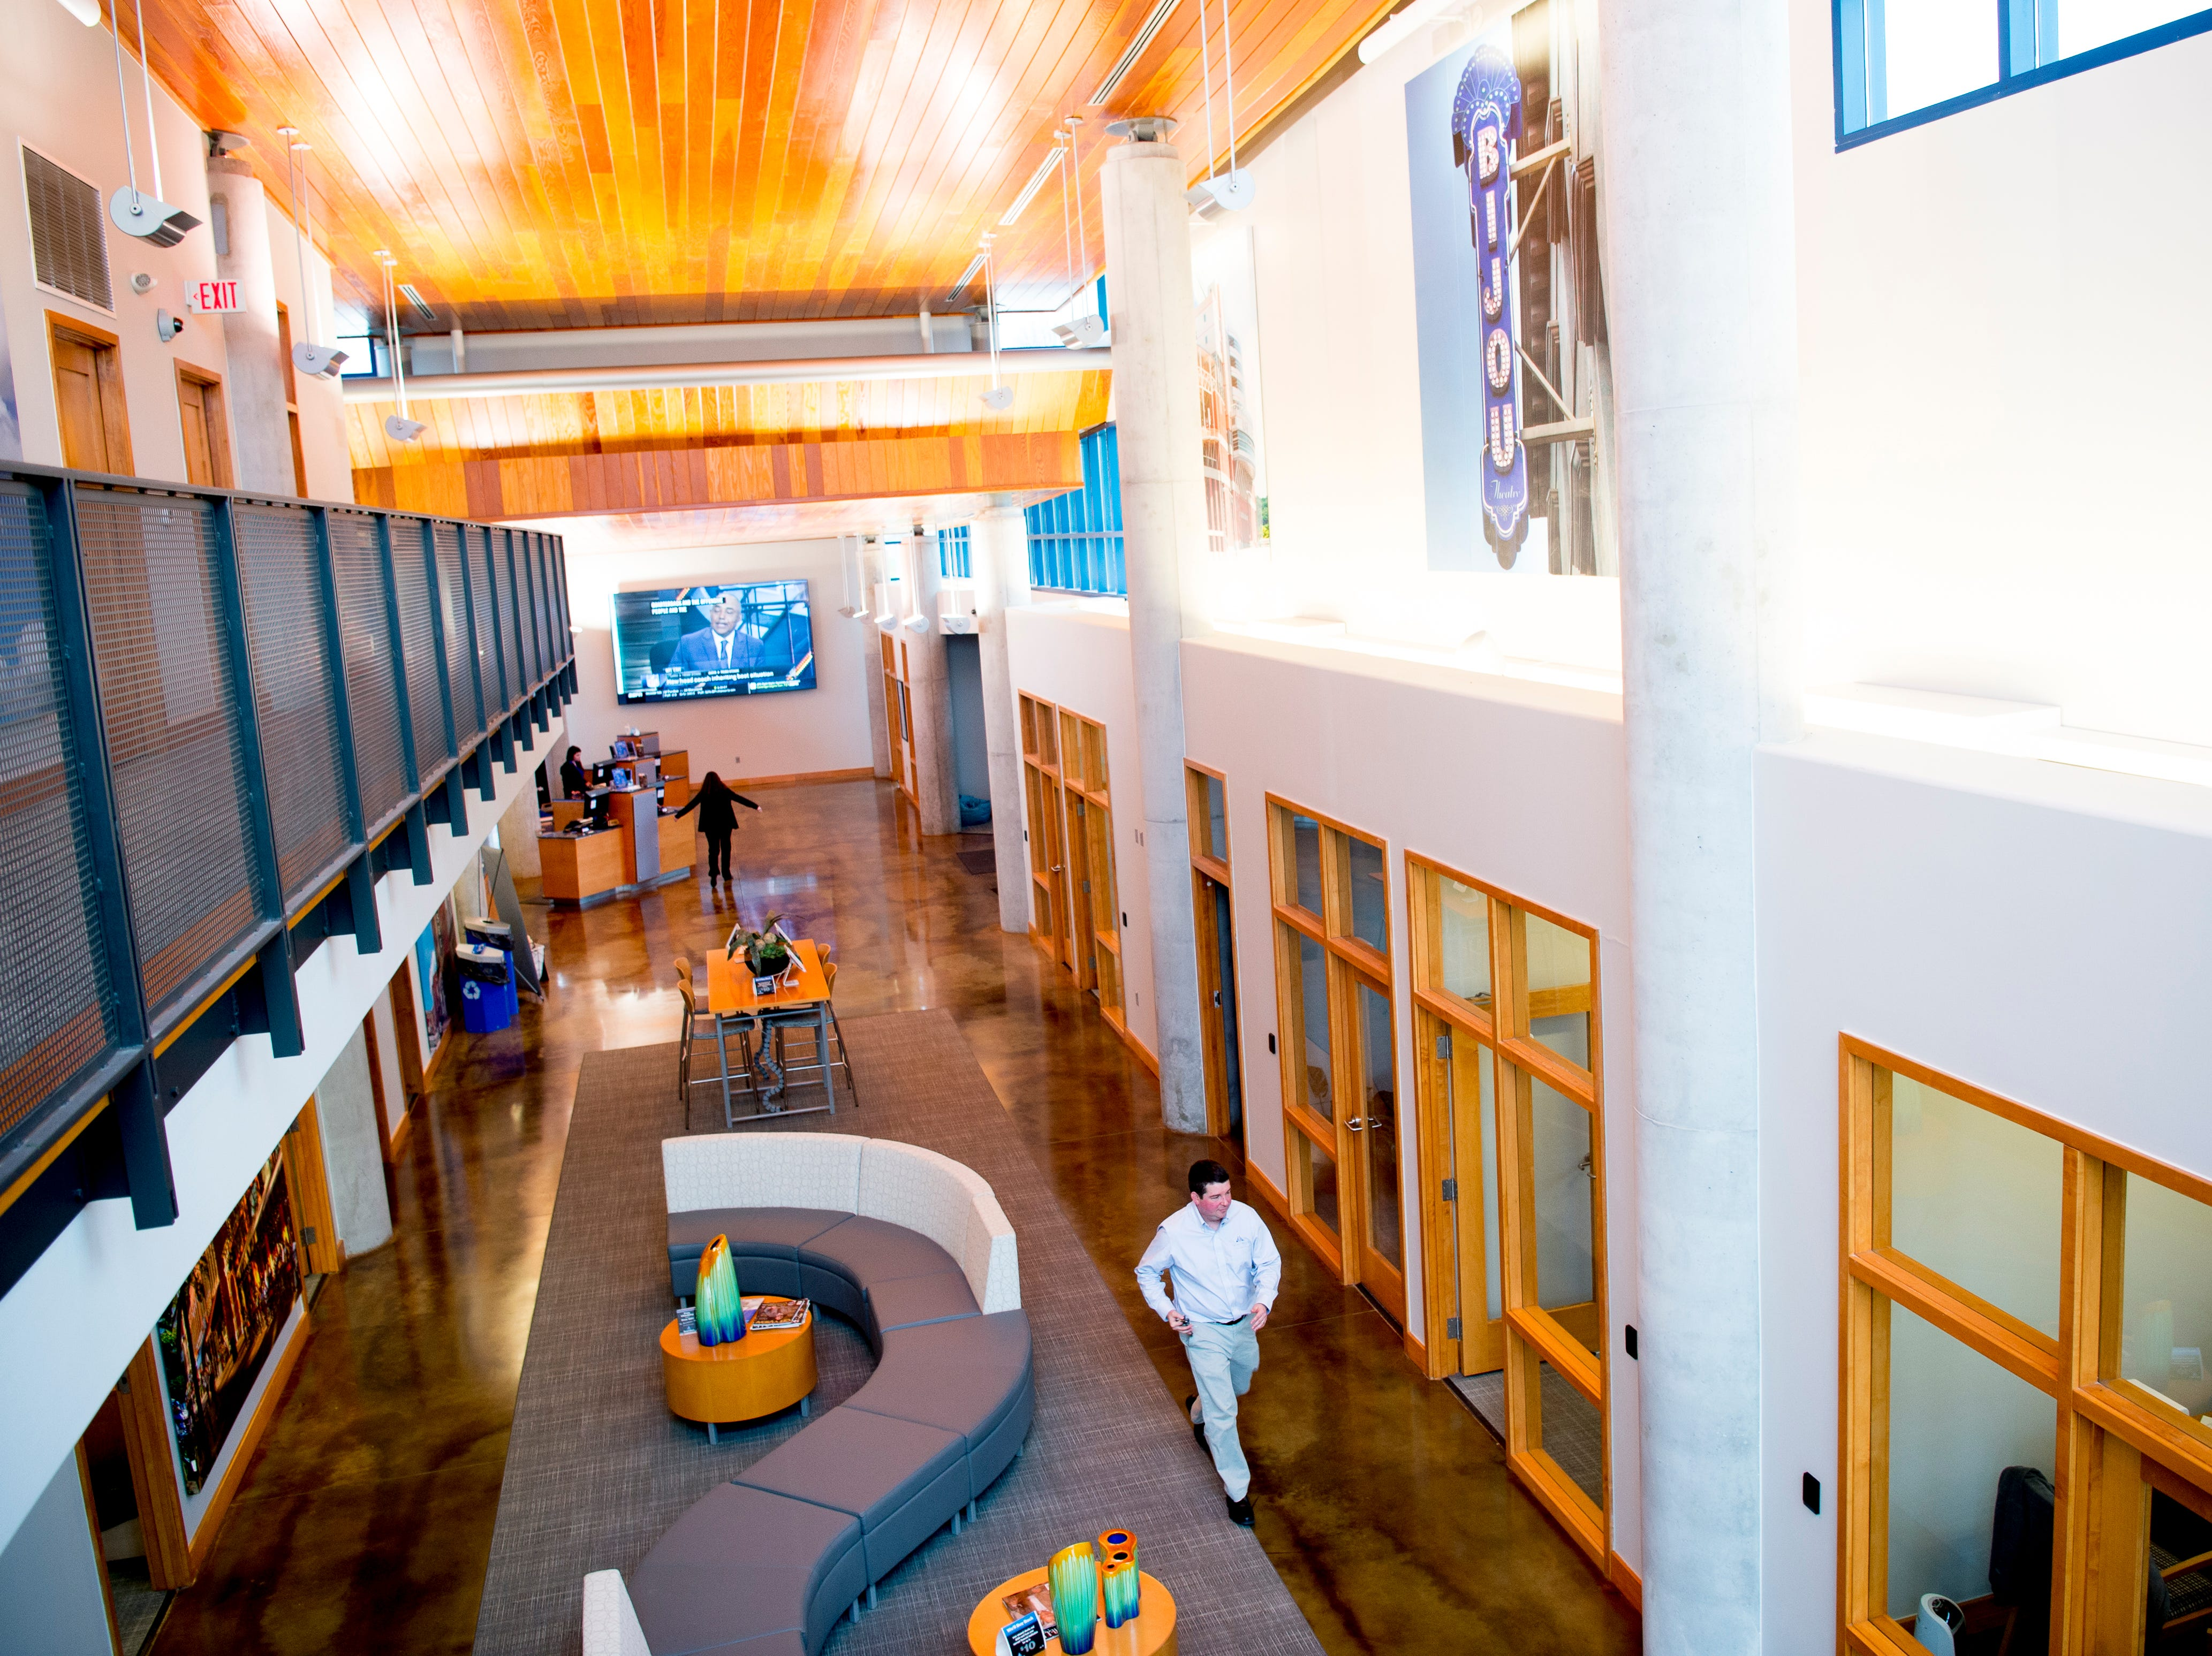 The interior of the Cedar Bluff SmartBank location in West Knoxville, Tennessee on Tuesday, February 12, 2019. Pigeon Forge-founded SmartBank has signed a definitive merger agreement with North Carolina-based Entegra Bank.